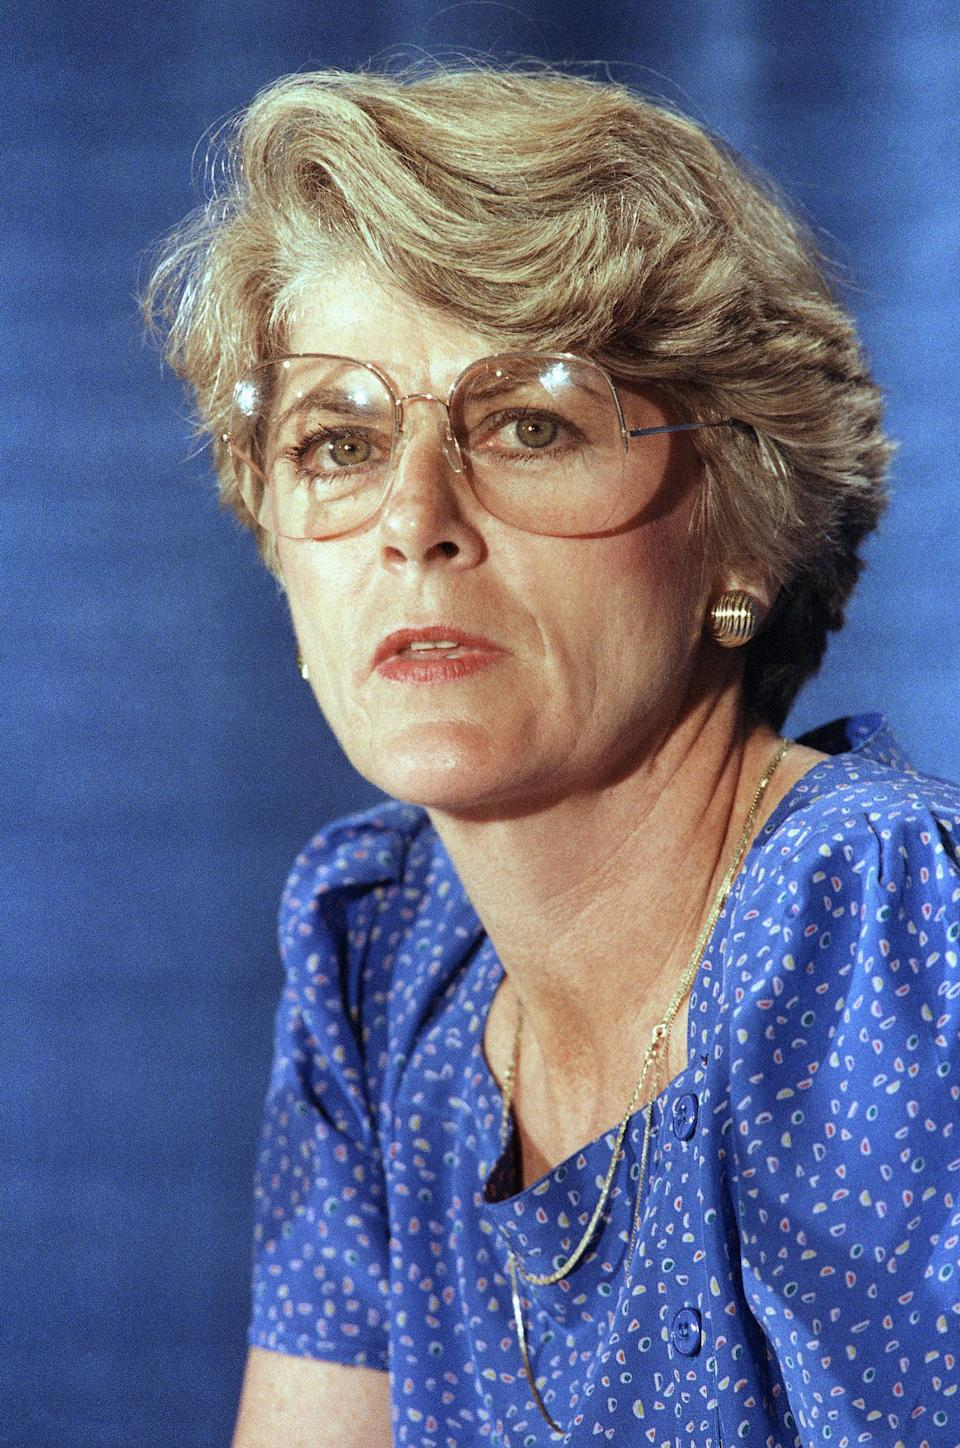 FILE - This Tuesday, Aug. 21, 1984 file picture shows Geraldine Ferraro at a news conference in New York. A spokesperson said Saturday, March 26, 2011 that Ferraro, the first woman to run for vice president, has died at 75. (AP Photo/Suzanne Vlamis, File)